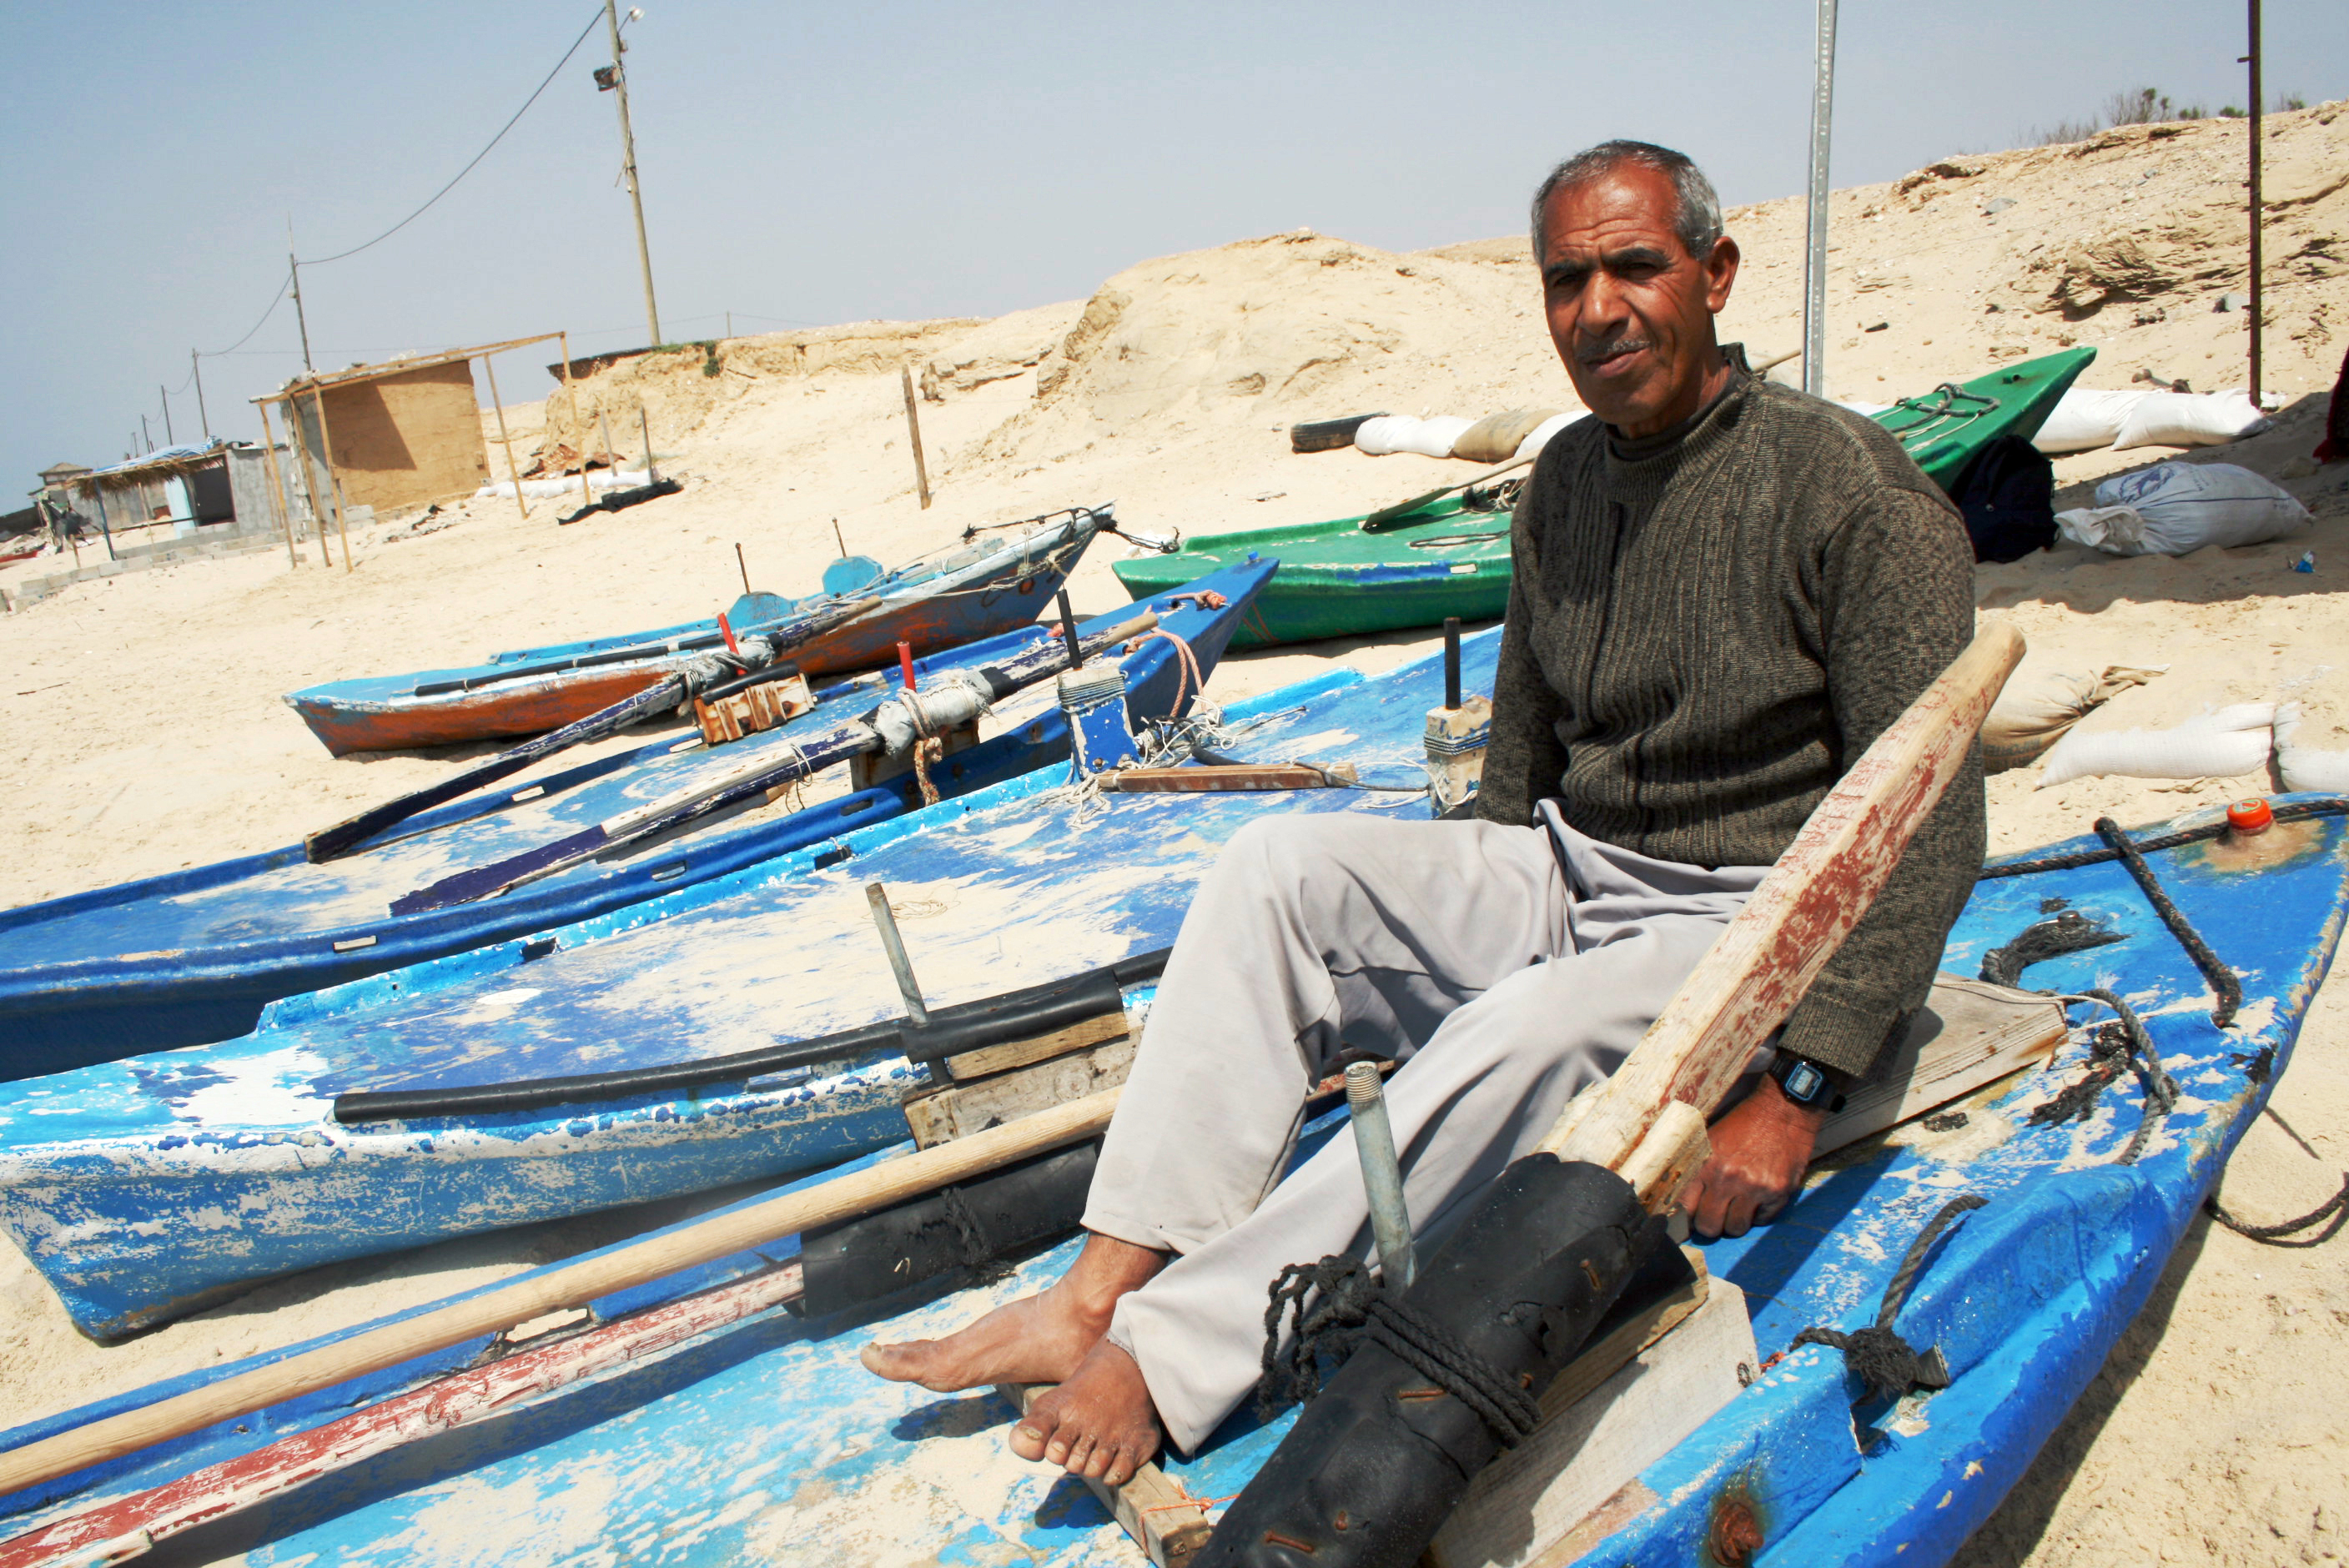 Ghanem Abu Jamal says many fishermen use very fine nets, which catch baby fish and prevent stocks from replenishing.